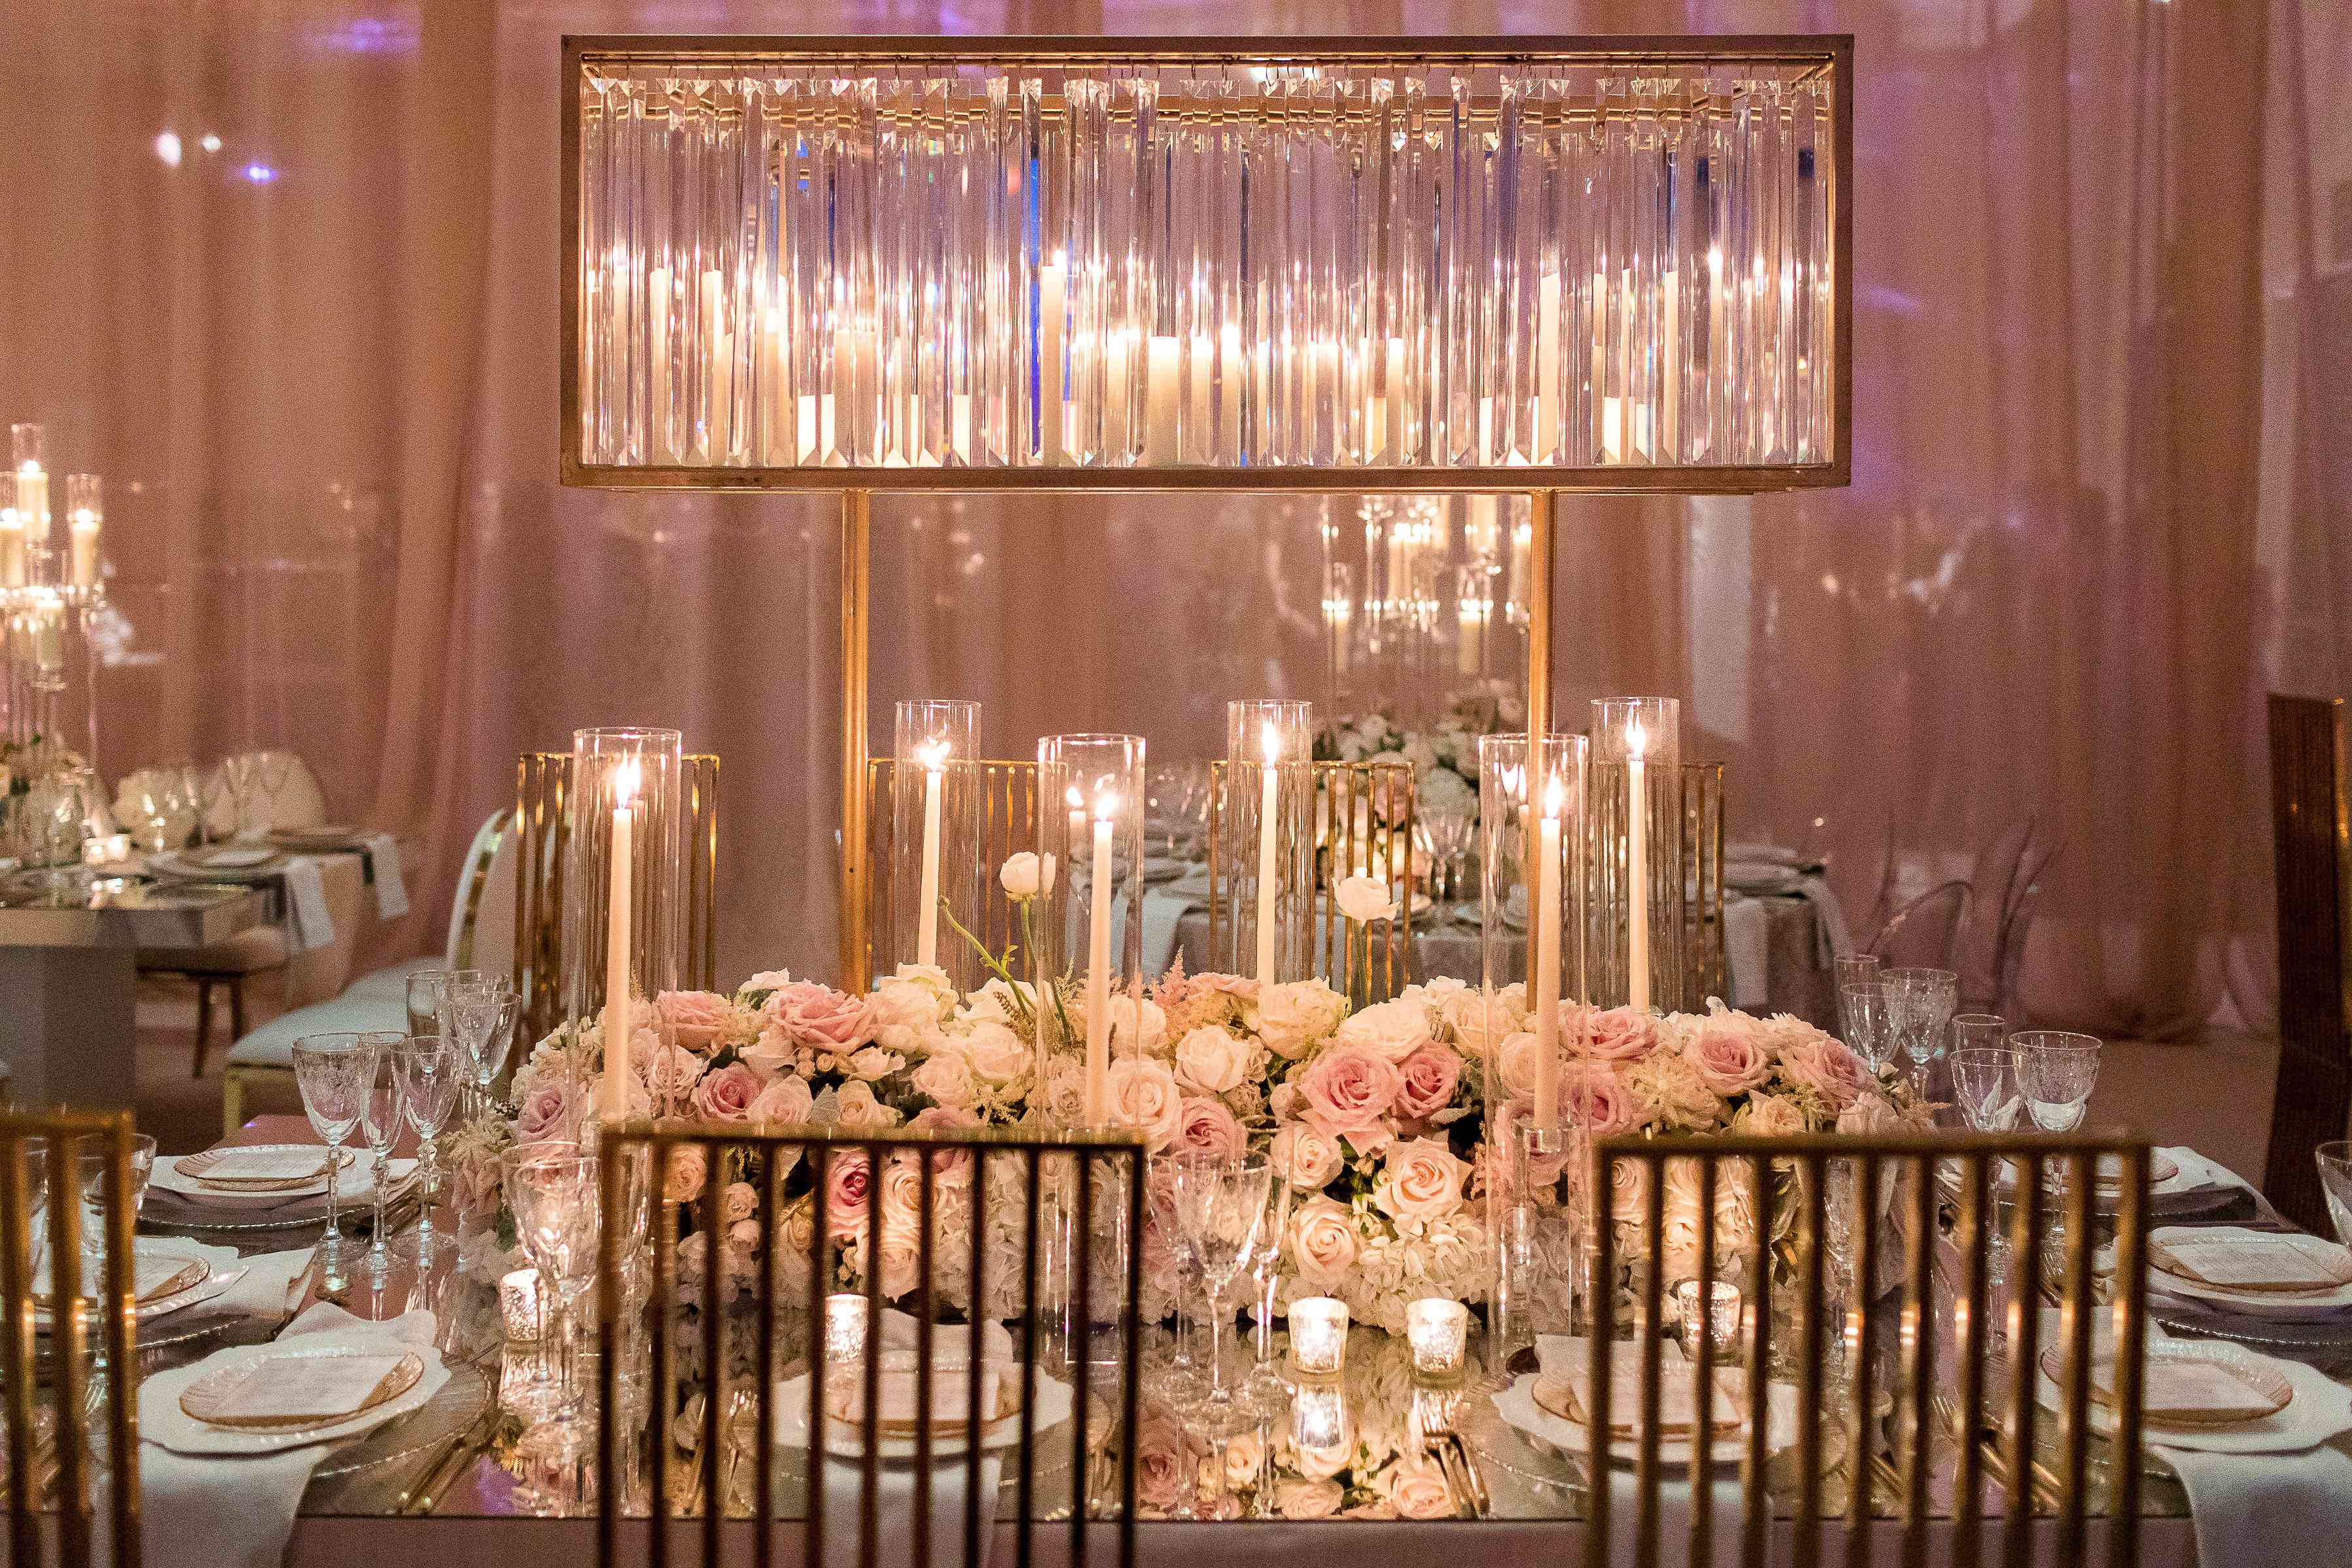 luxe decor candles flowers gold accents